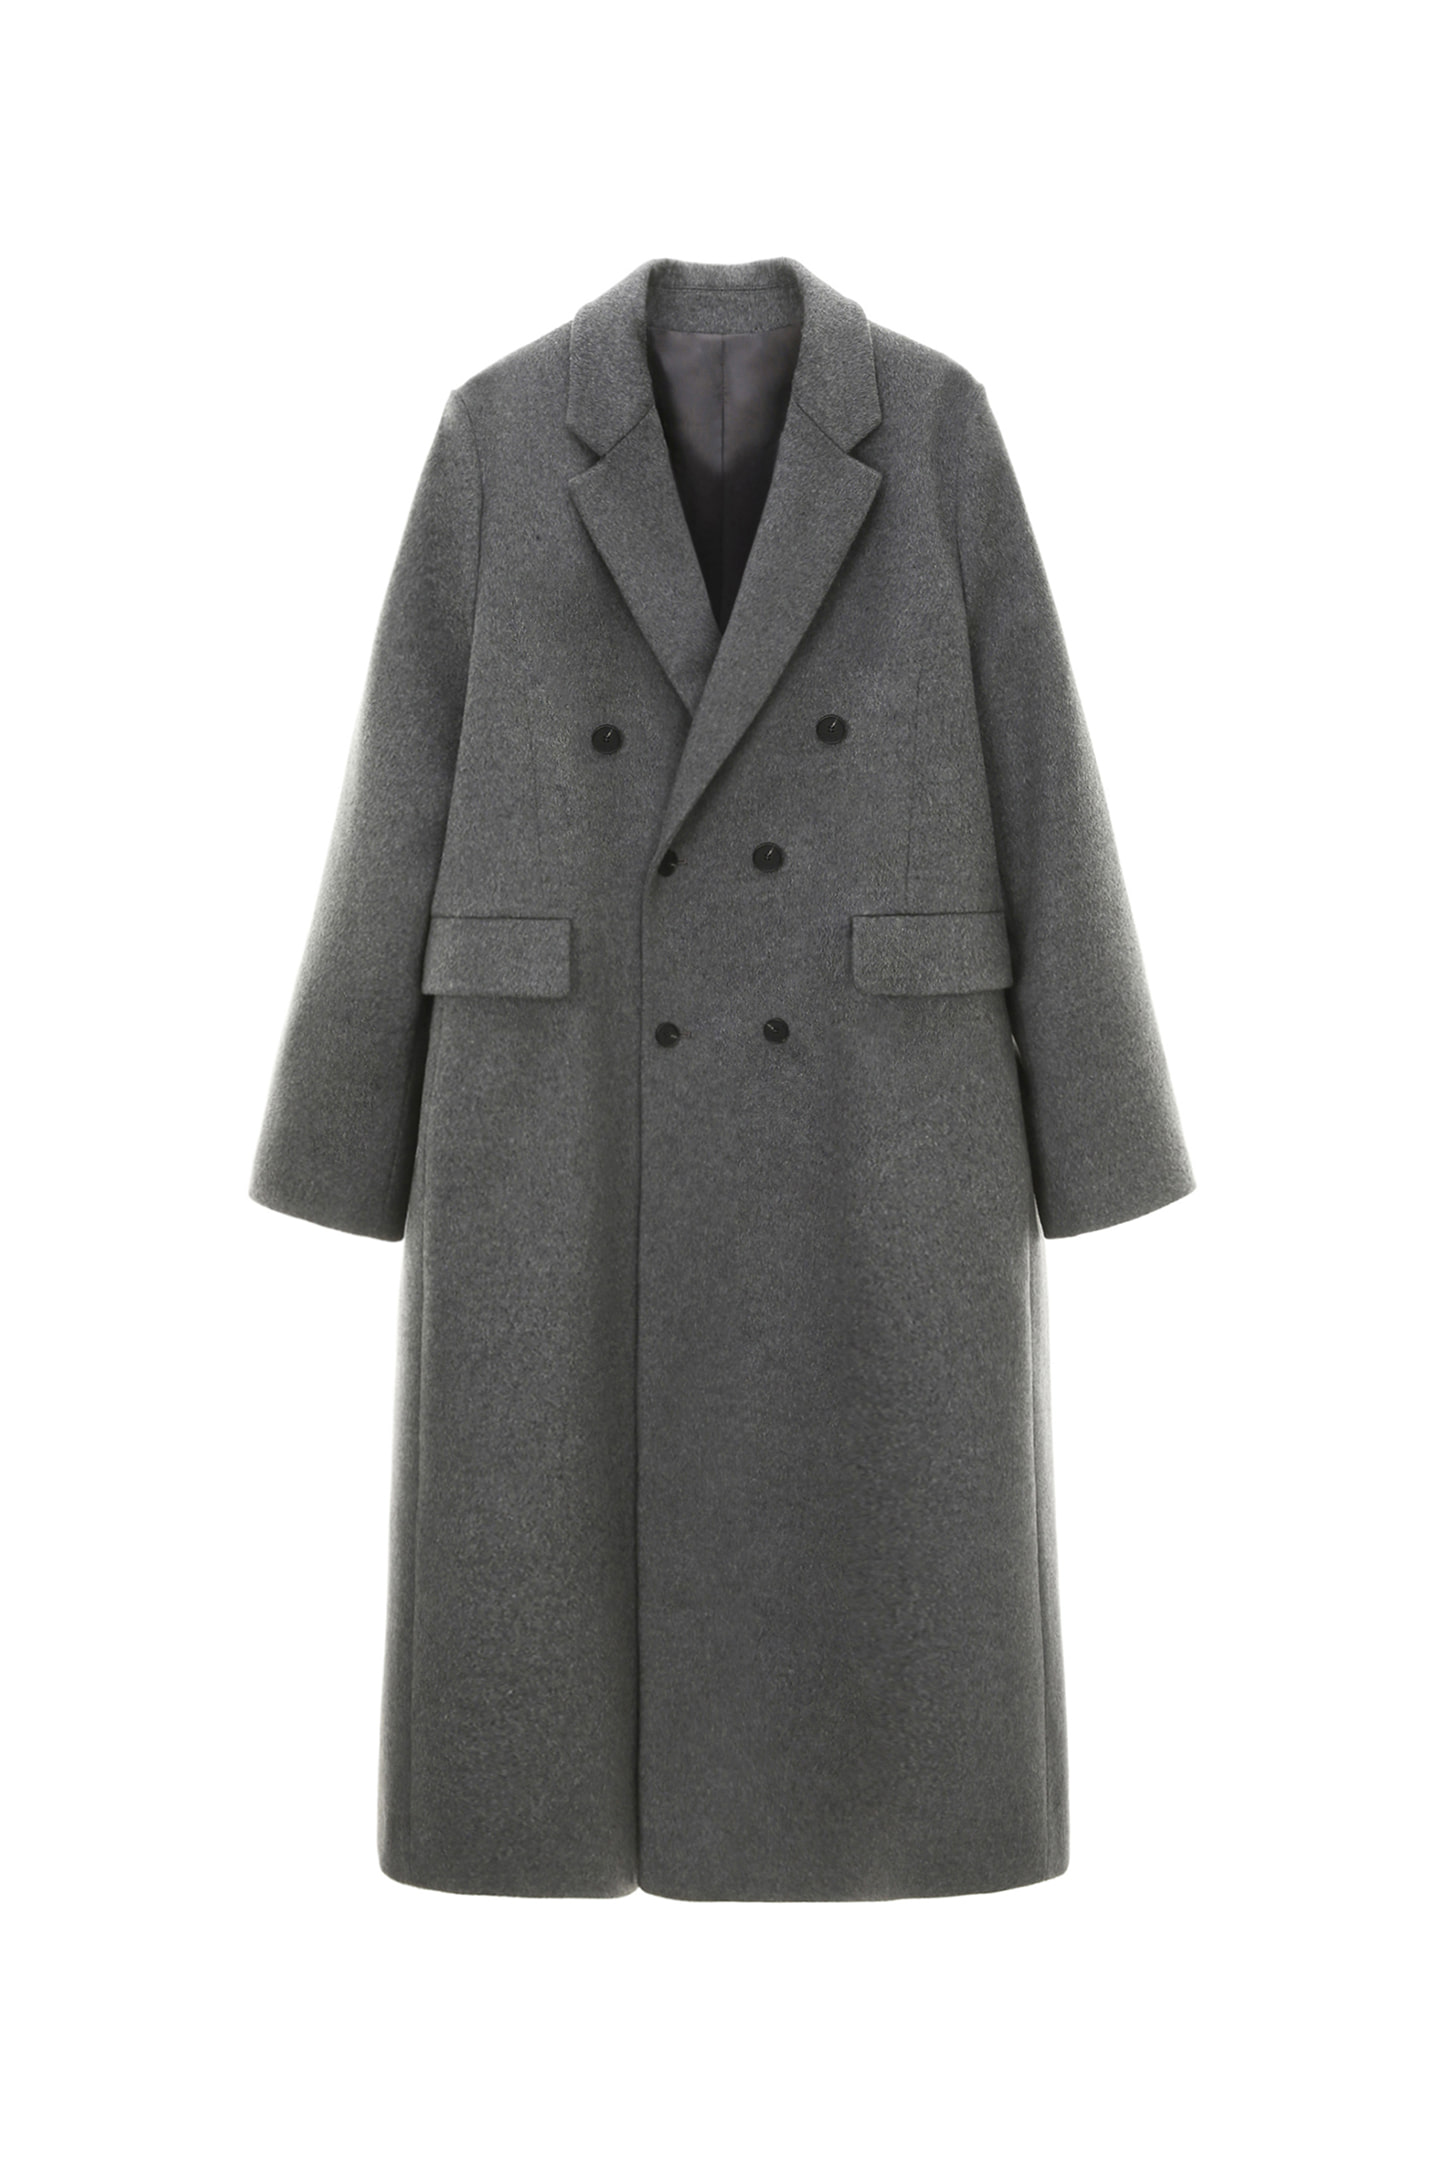 Cashmere Double Coat Men [Charcoal Gray]